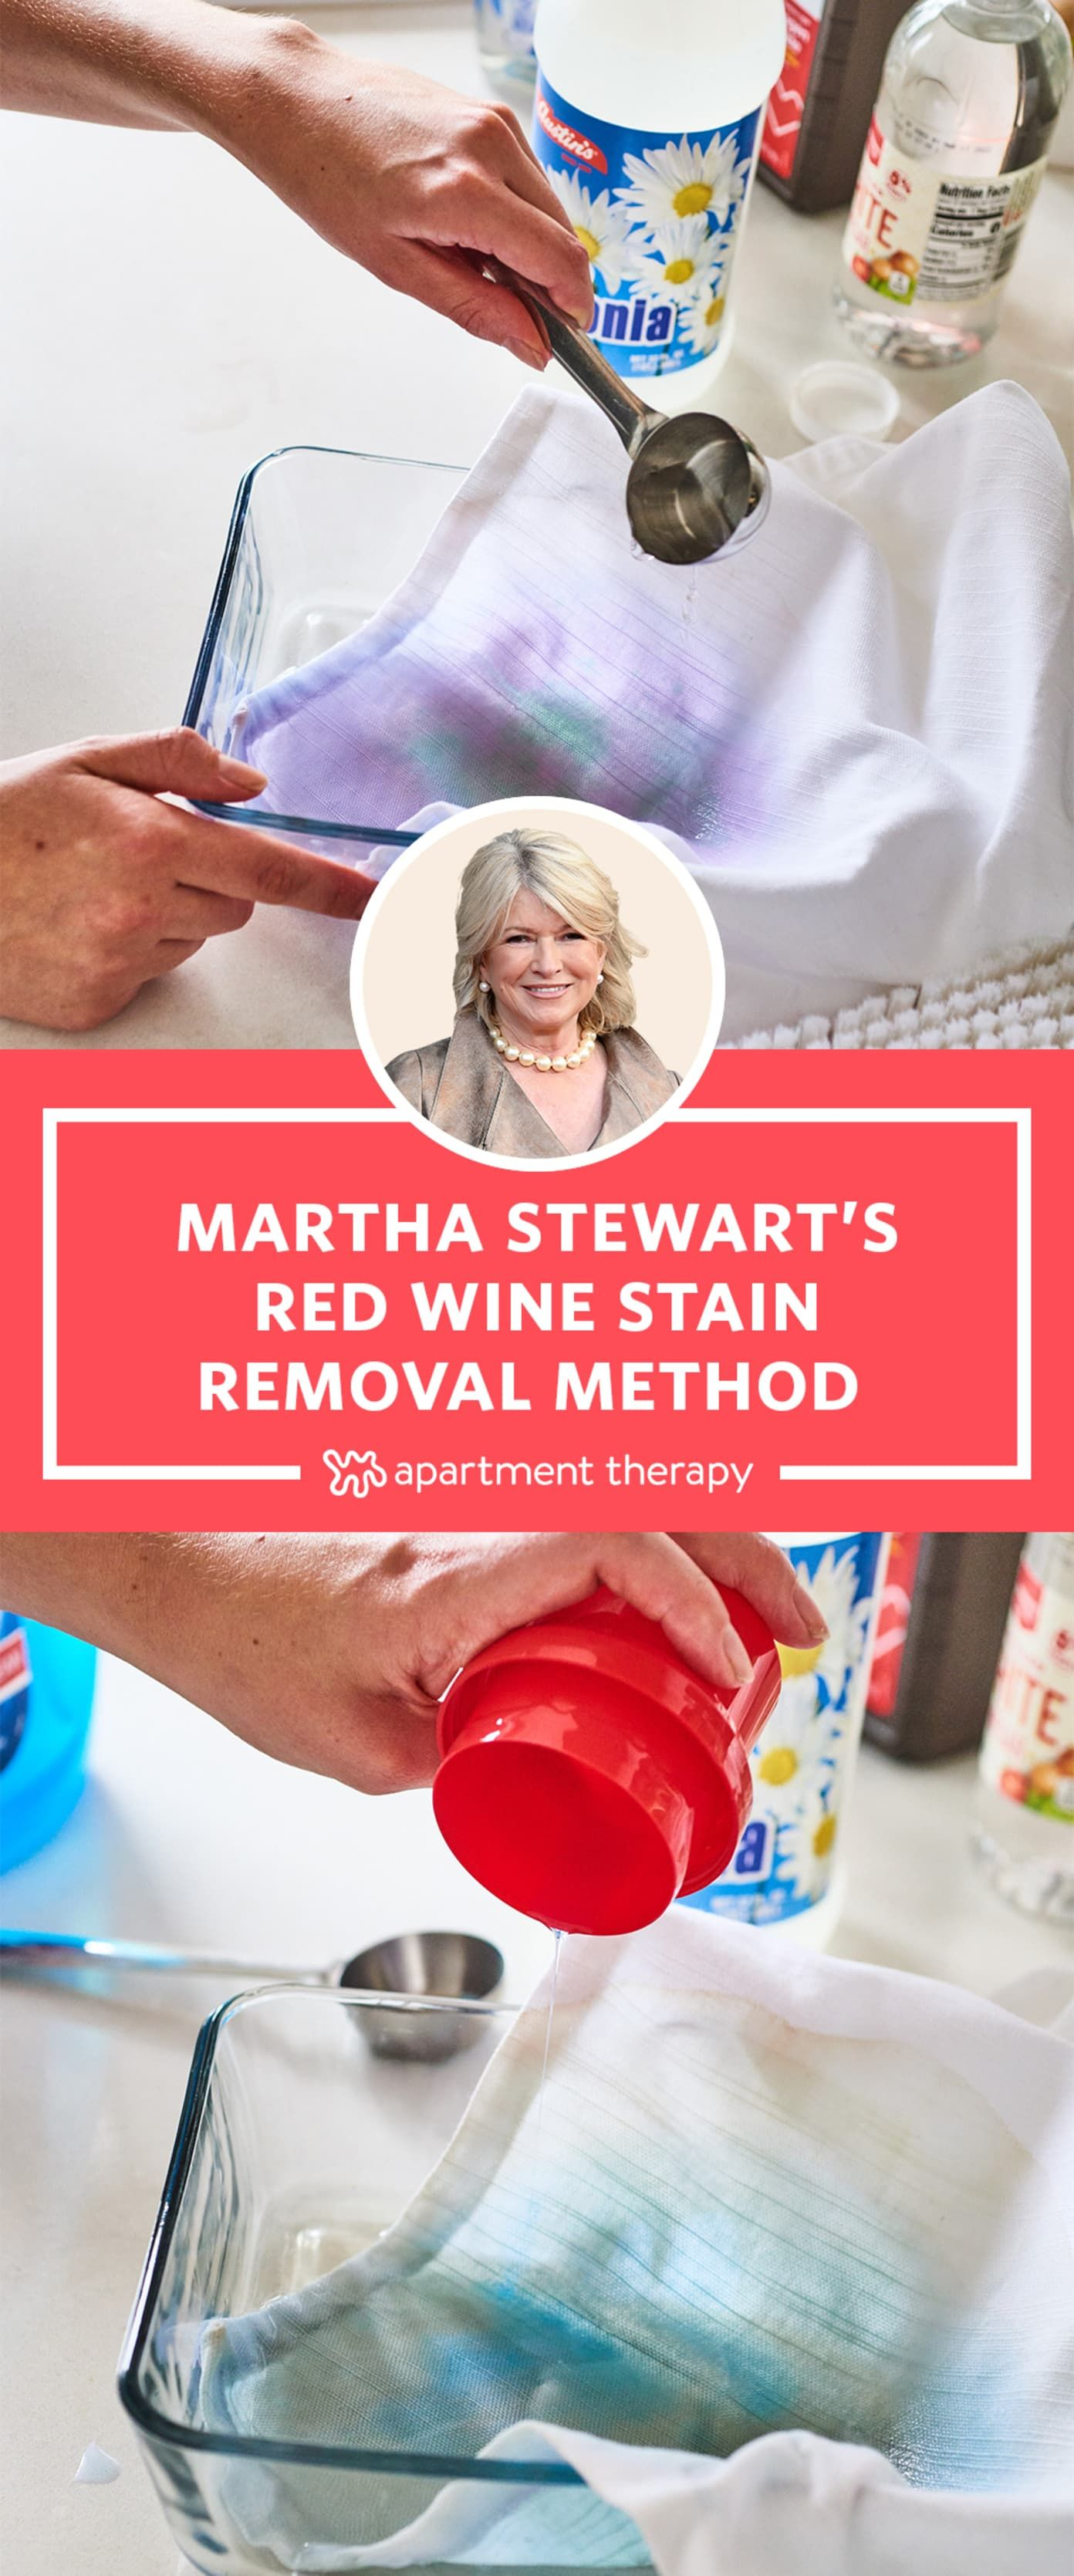 Martha Stewart S Elaborate 6 Step Method Is The Best For Removing Red Wine Stains In 2020 Red Wine Stains Red Wine Stain Removal Wine Stains